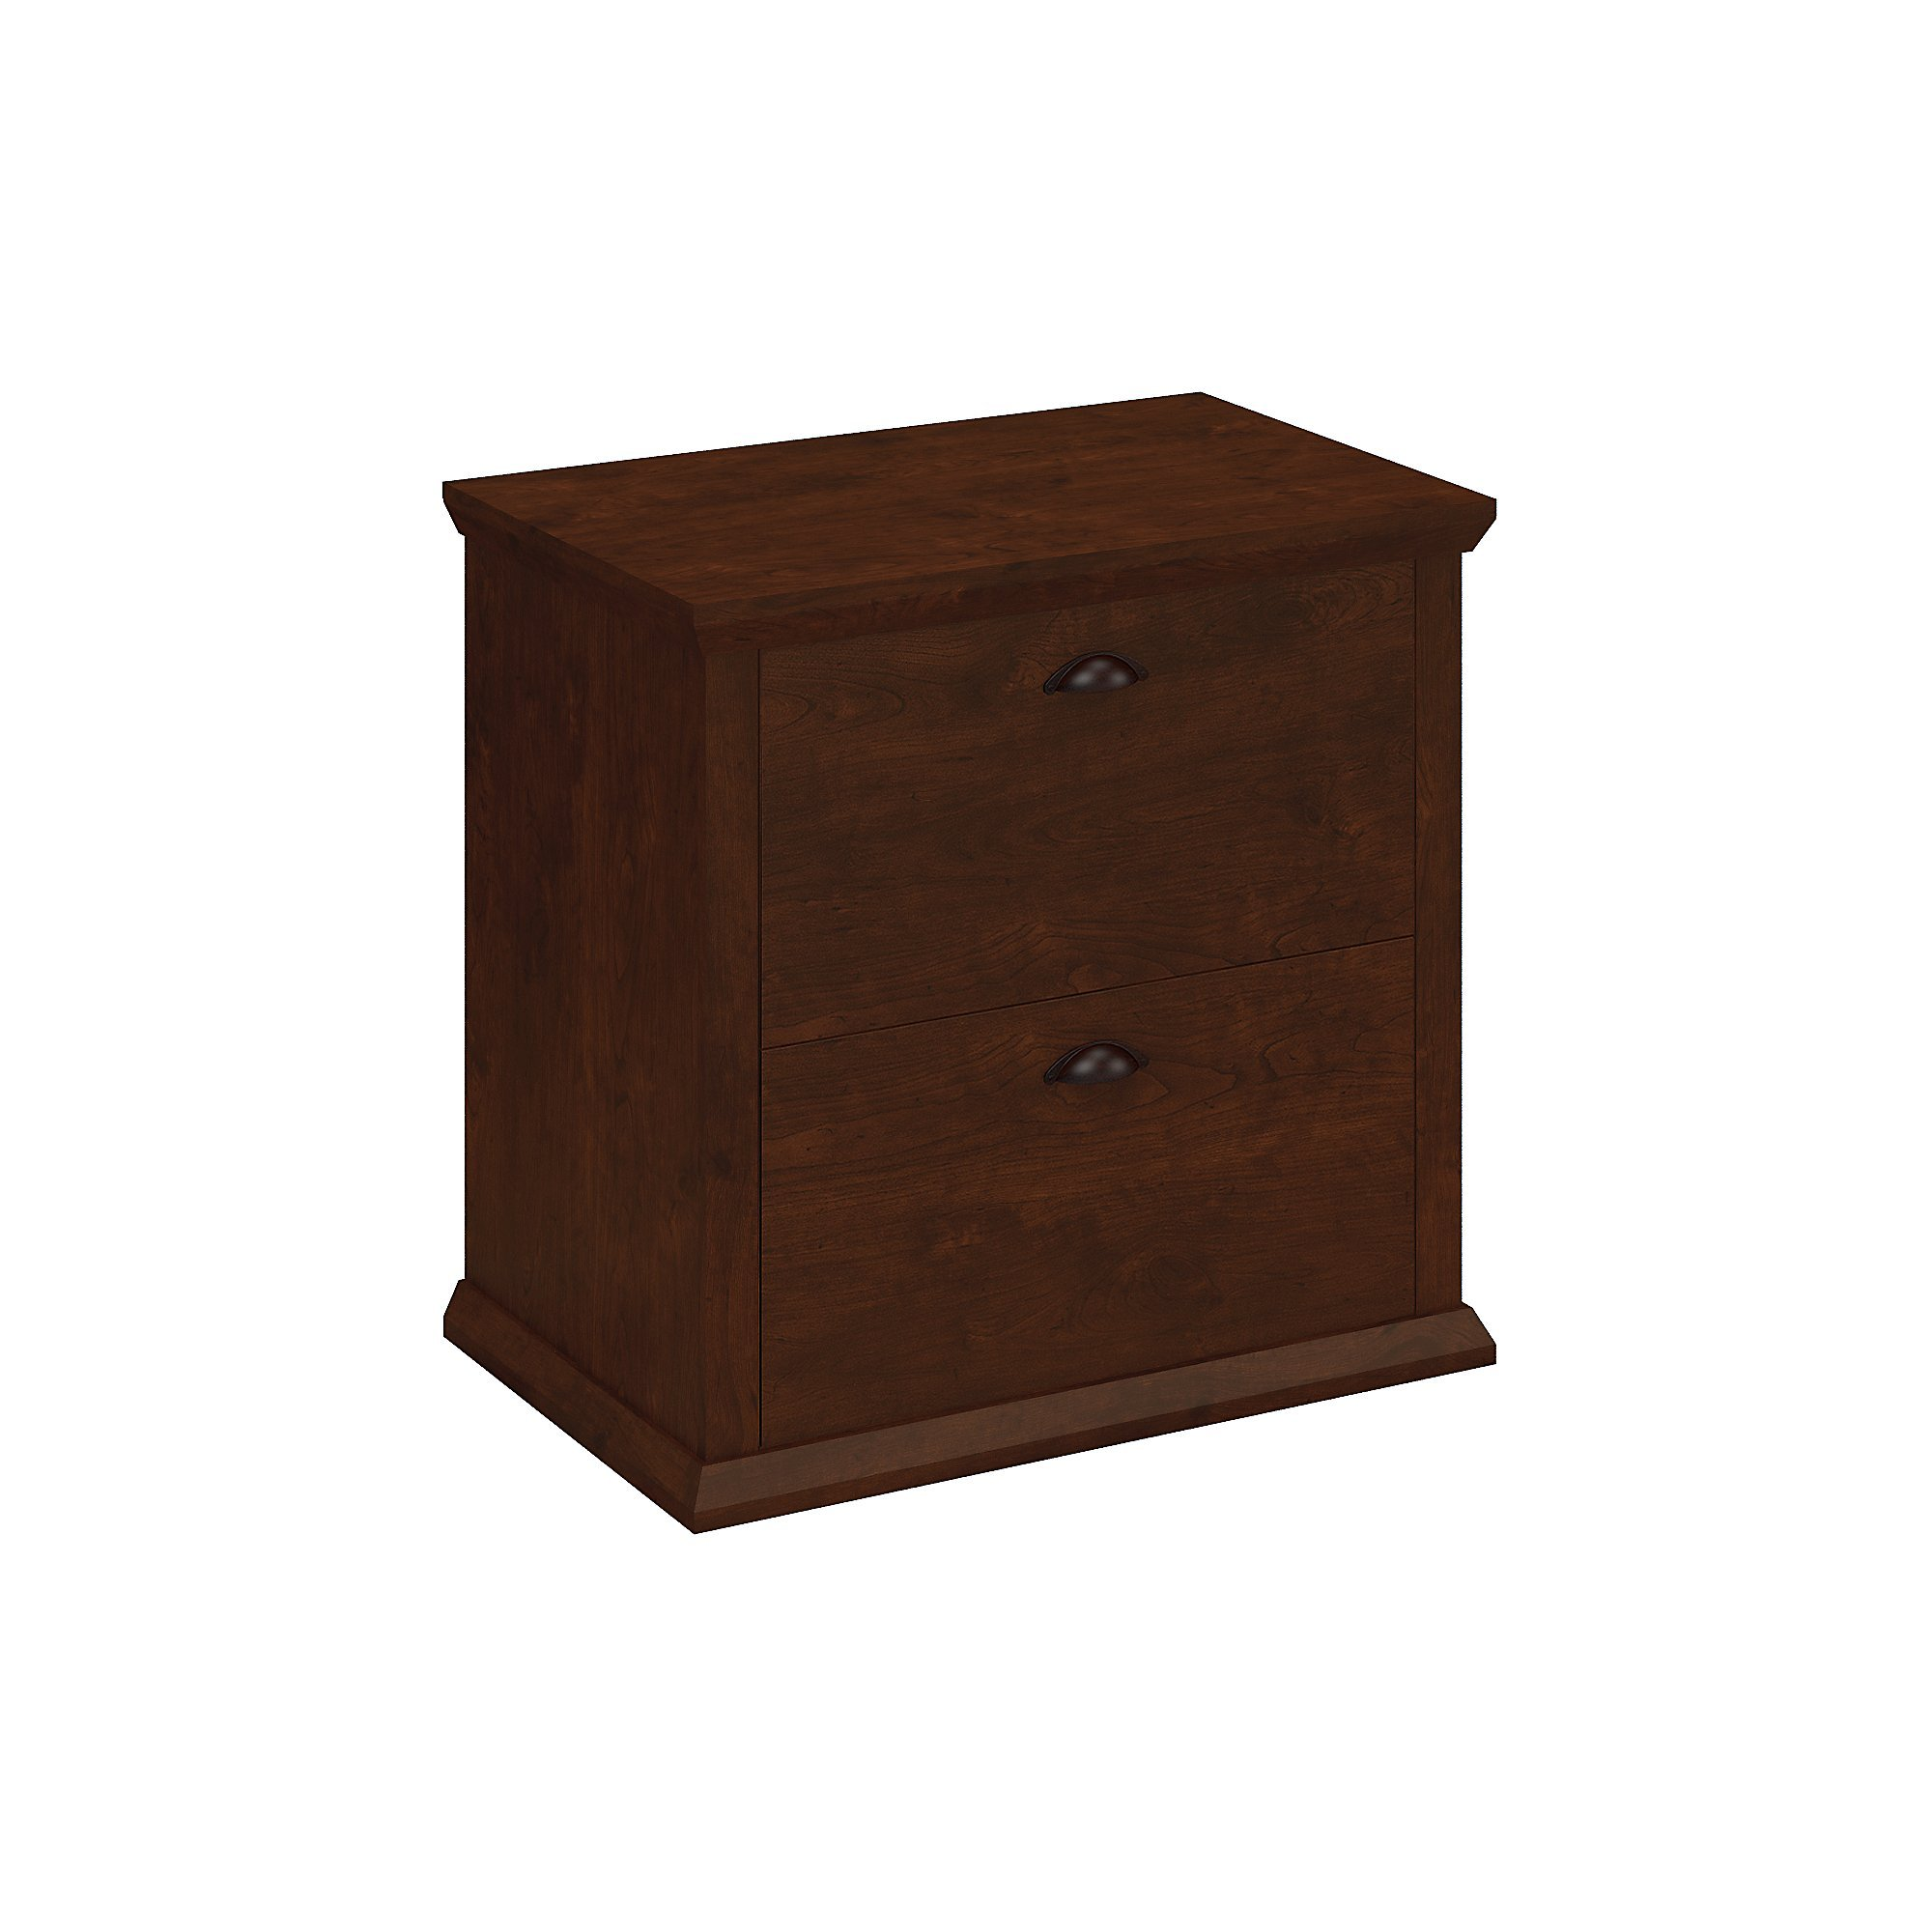 Bush Furniture Yorktown Lateral File Cabinet in Antique Cherry by Bush Furniture